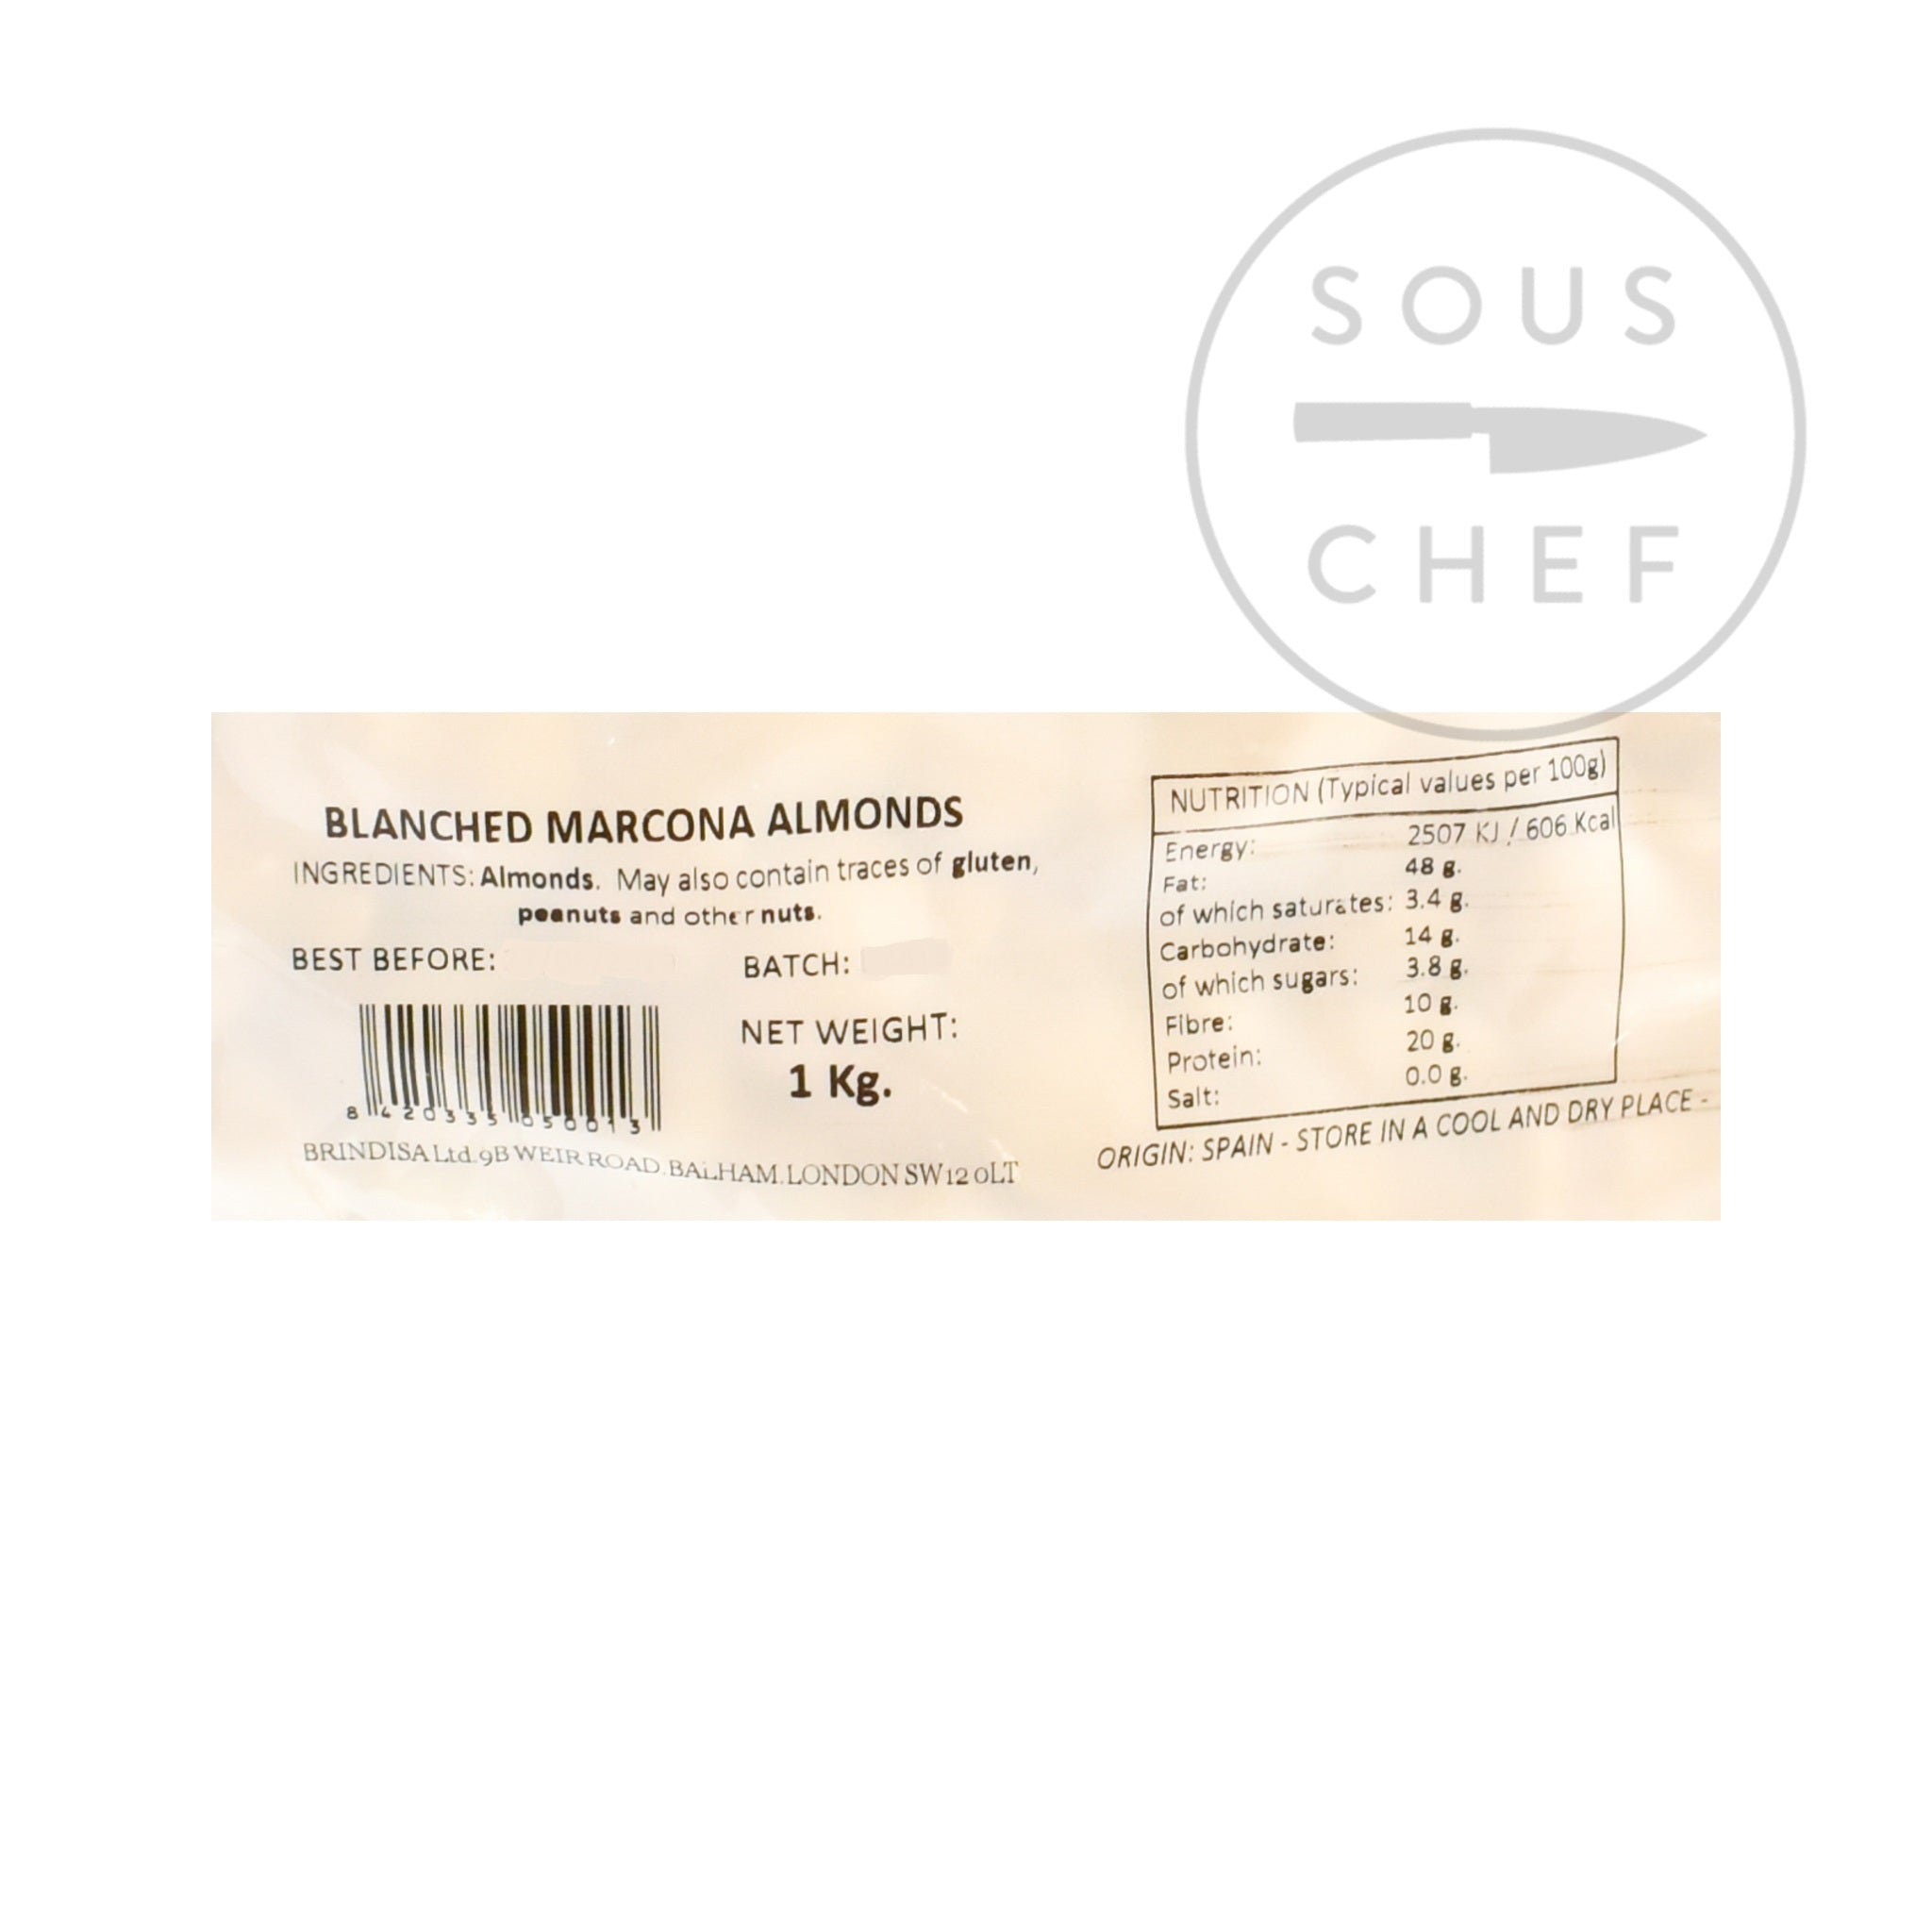 Blanched, Skinless Marcona Almonds 1kg Snacks & Confectionery Spanish Food & Ingredients Nutritional Information